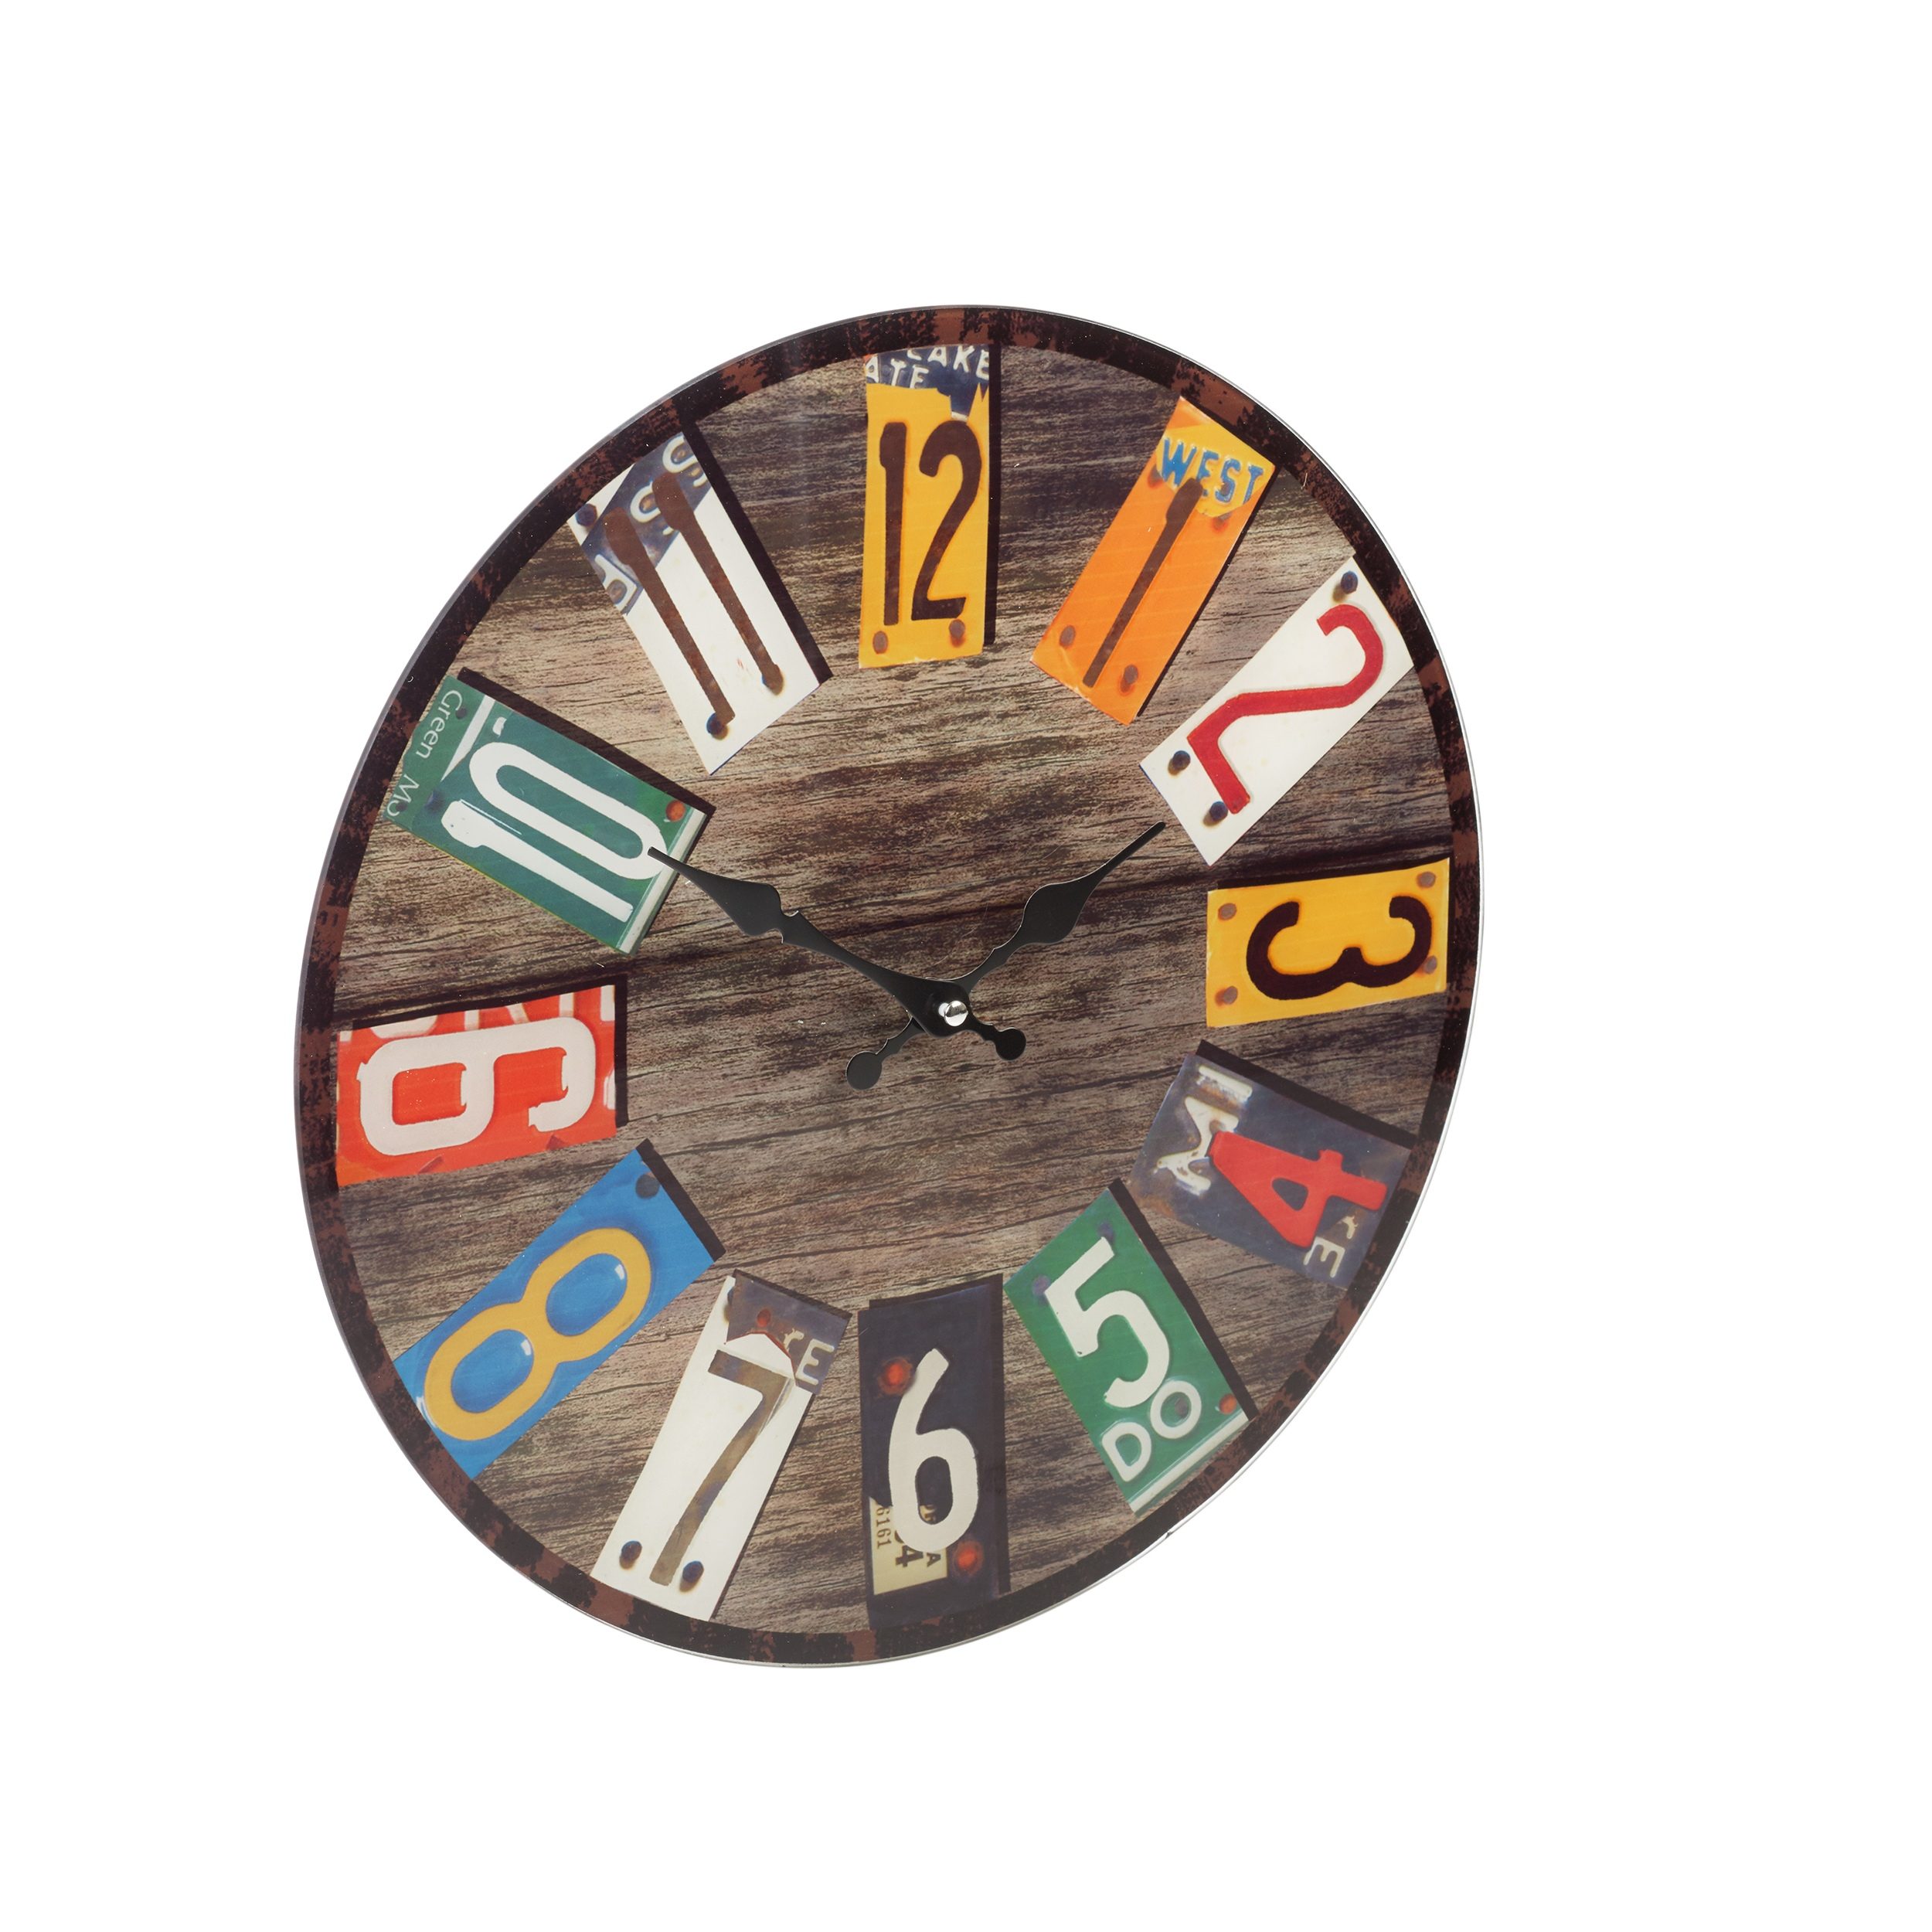 38cm large round glass shabby wall clock vintage retro antique 38cm large round glass shabby wall clock vintage retro antique distressed style ebay amipublicfo Gallery